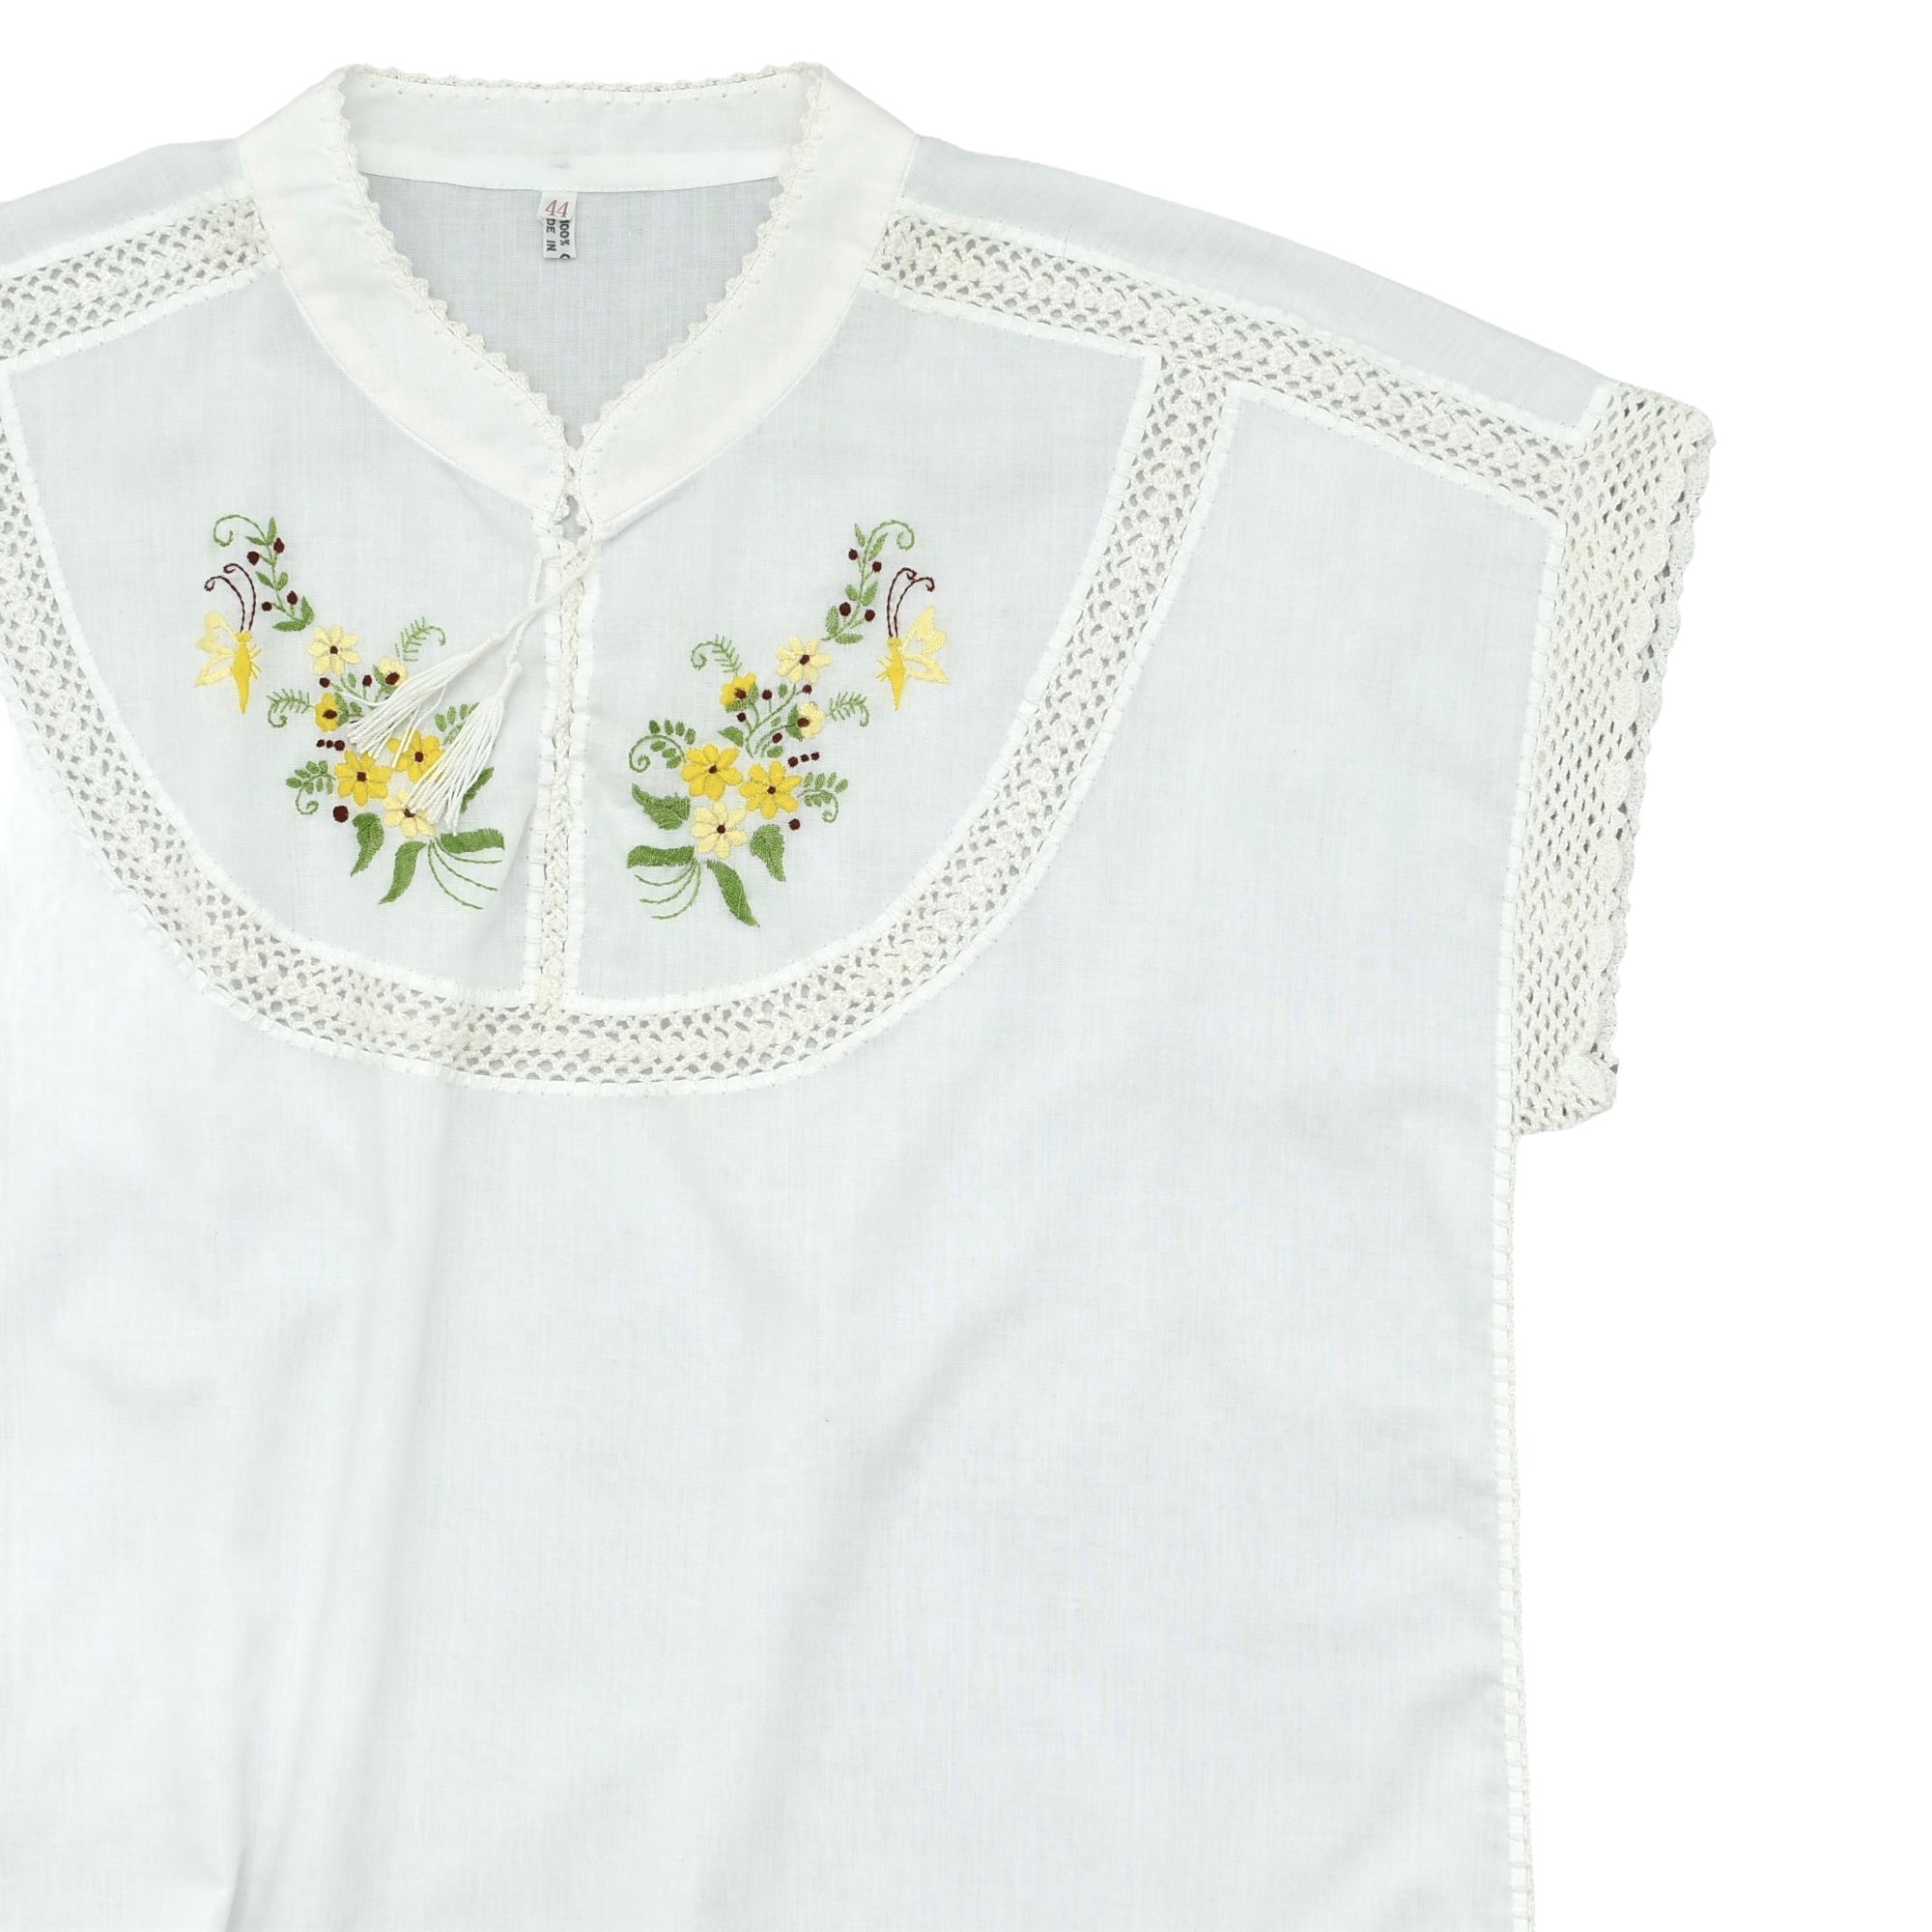 Flower mbroidery & Crochet square blouse